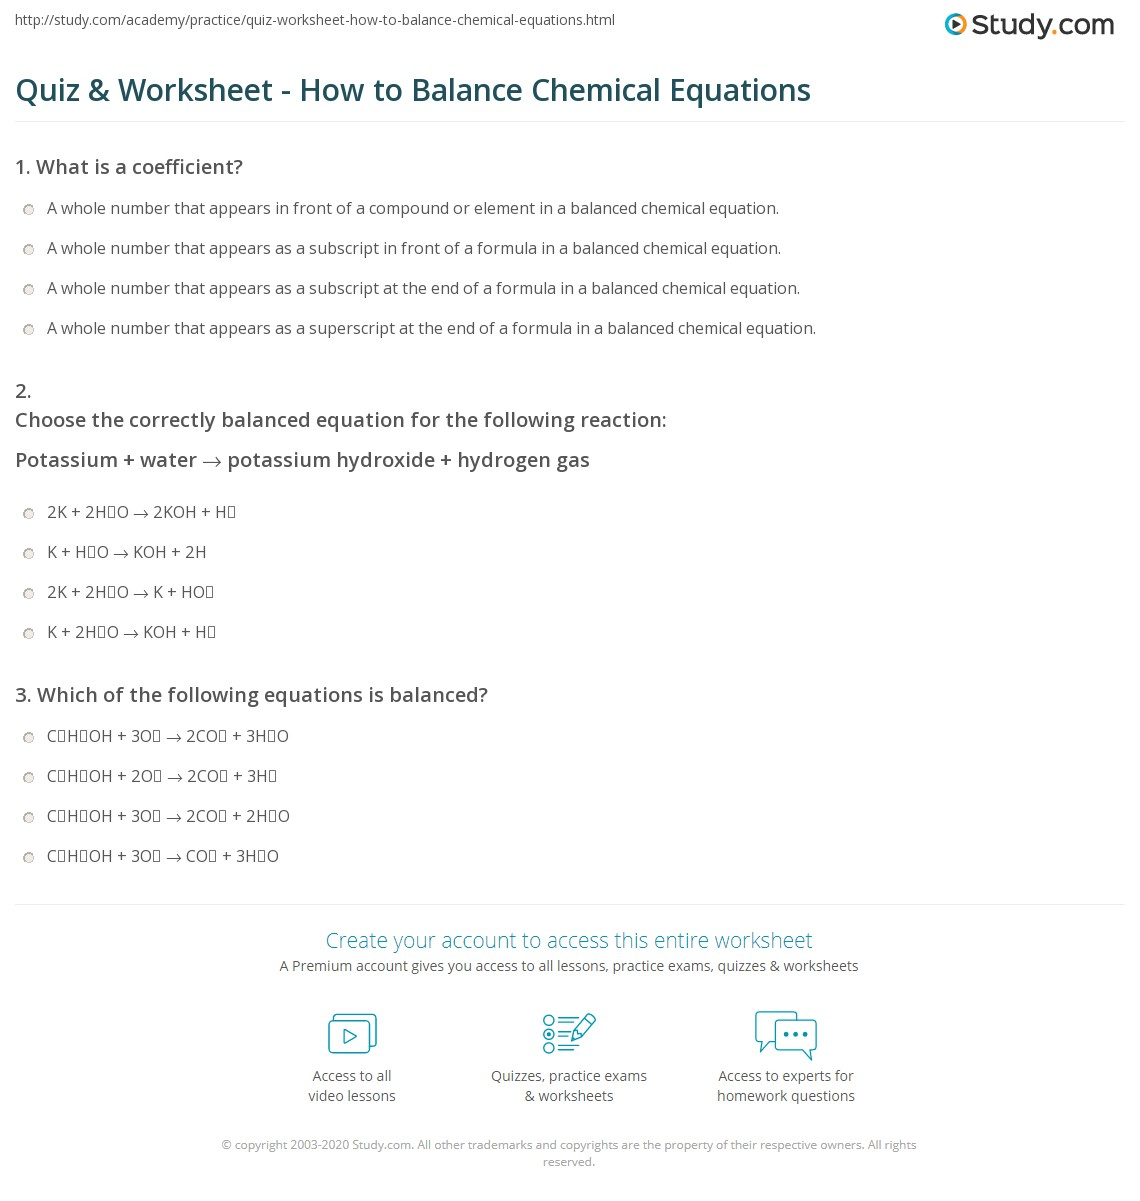 Quiz Worksheet How to Balance Chemical Equations – Balancing Chemical Equations Chapter 7 Worksheet 1 Answers